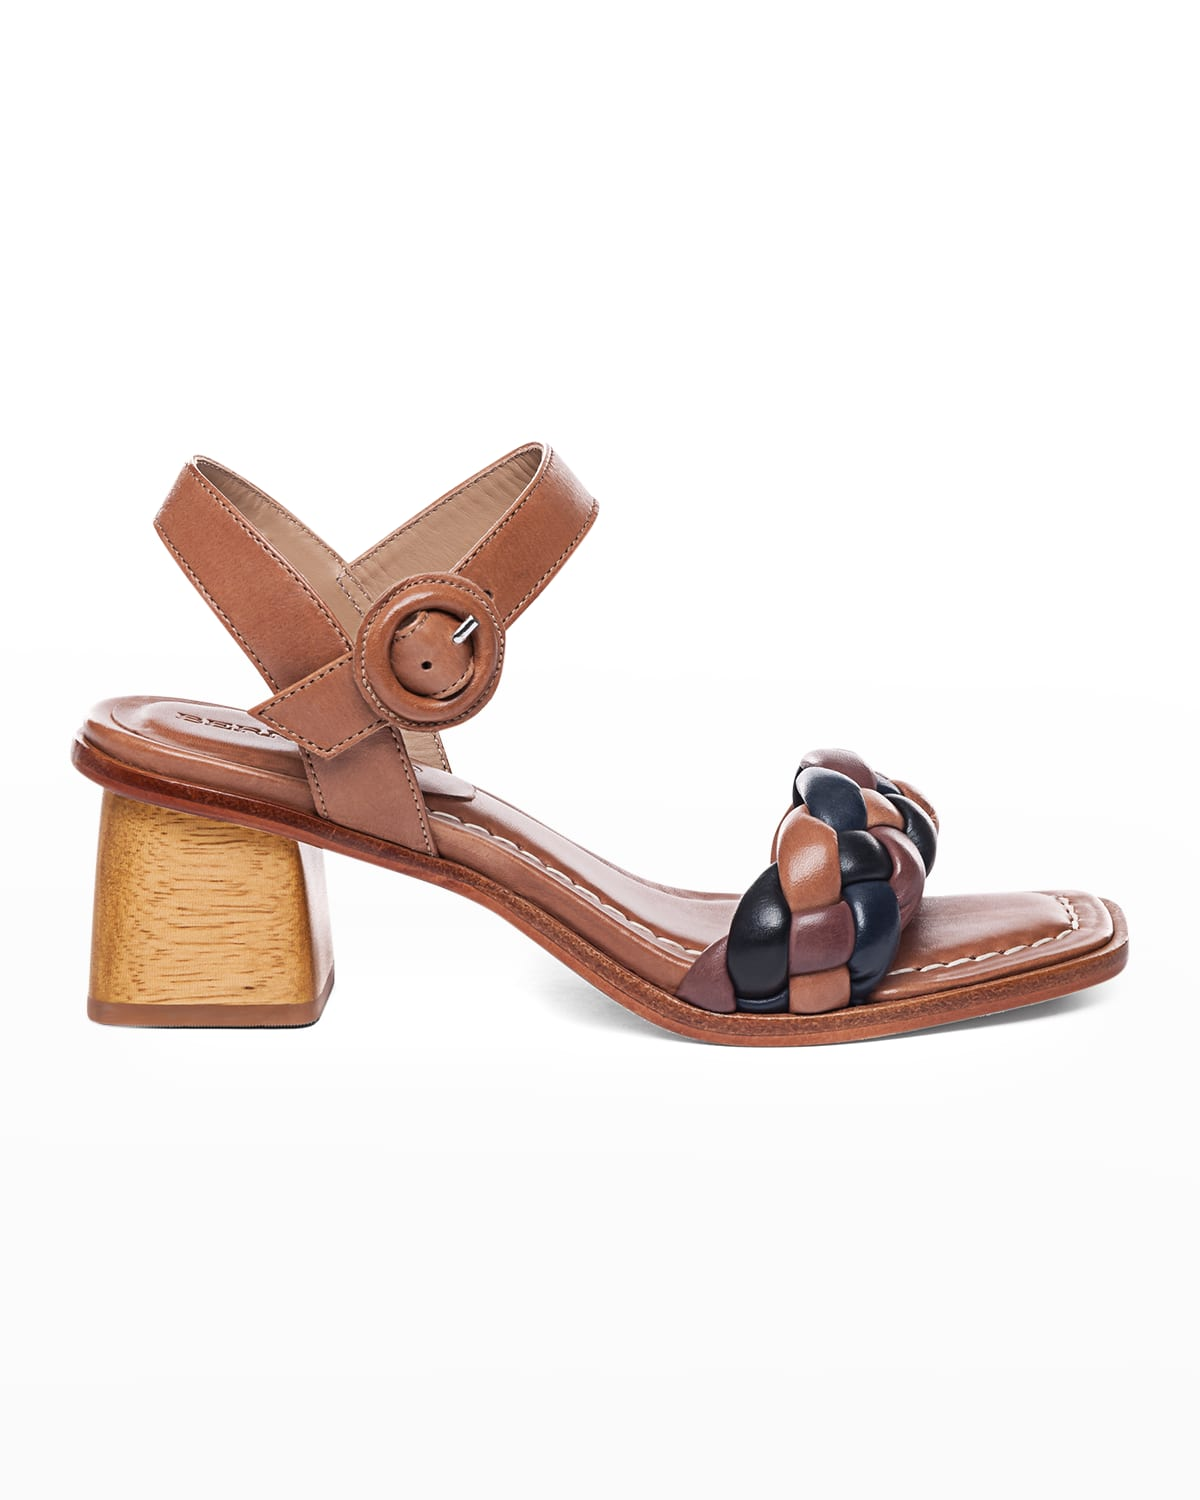 Braided Ankle-Strap Mid-Heel Sandals